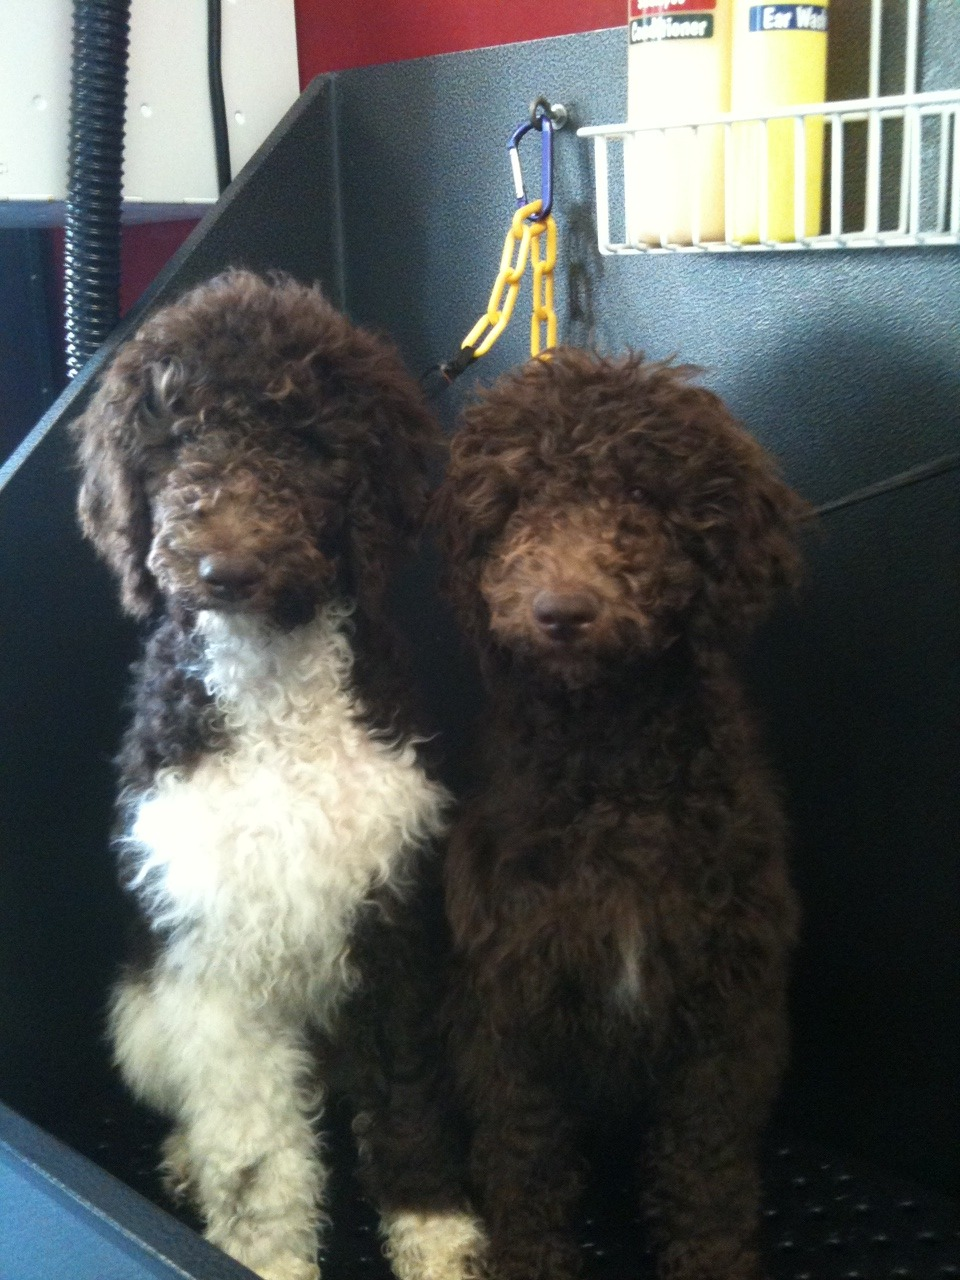 Your daily cute: siblings Sterling and CeCe, 4 month old standard poodles!